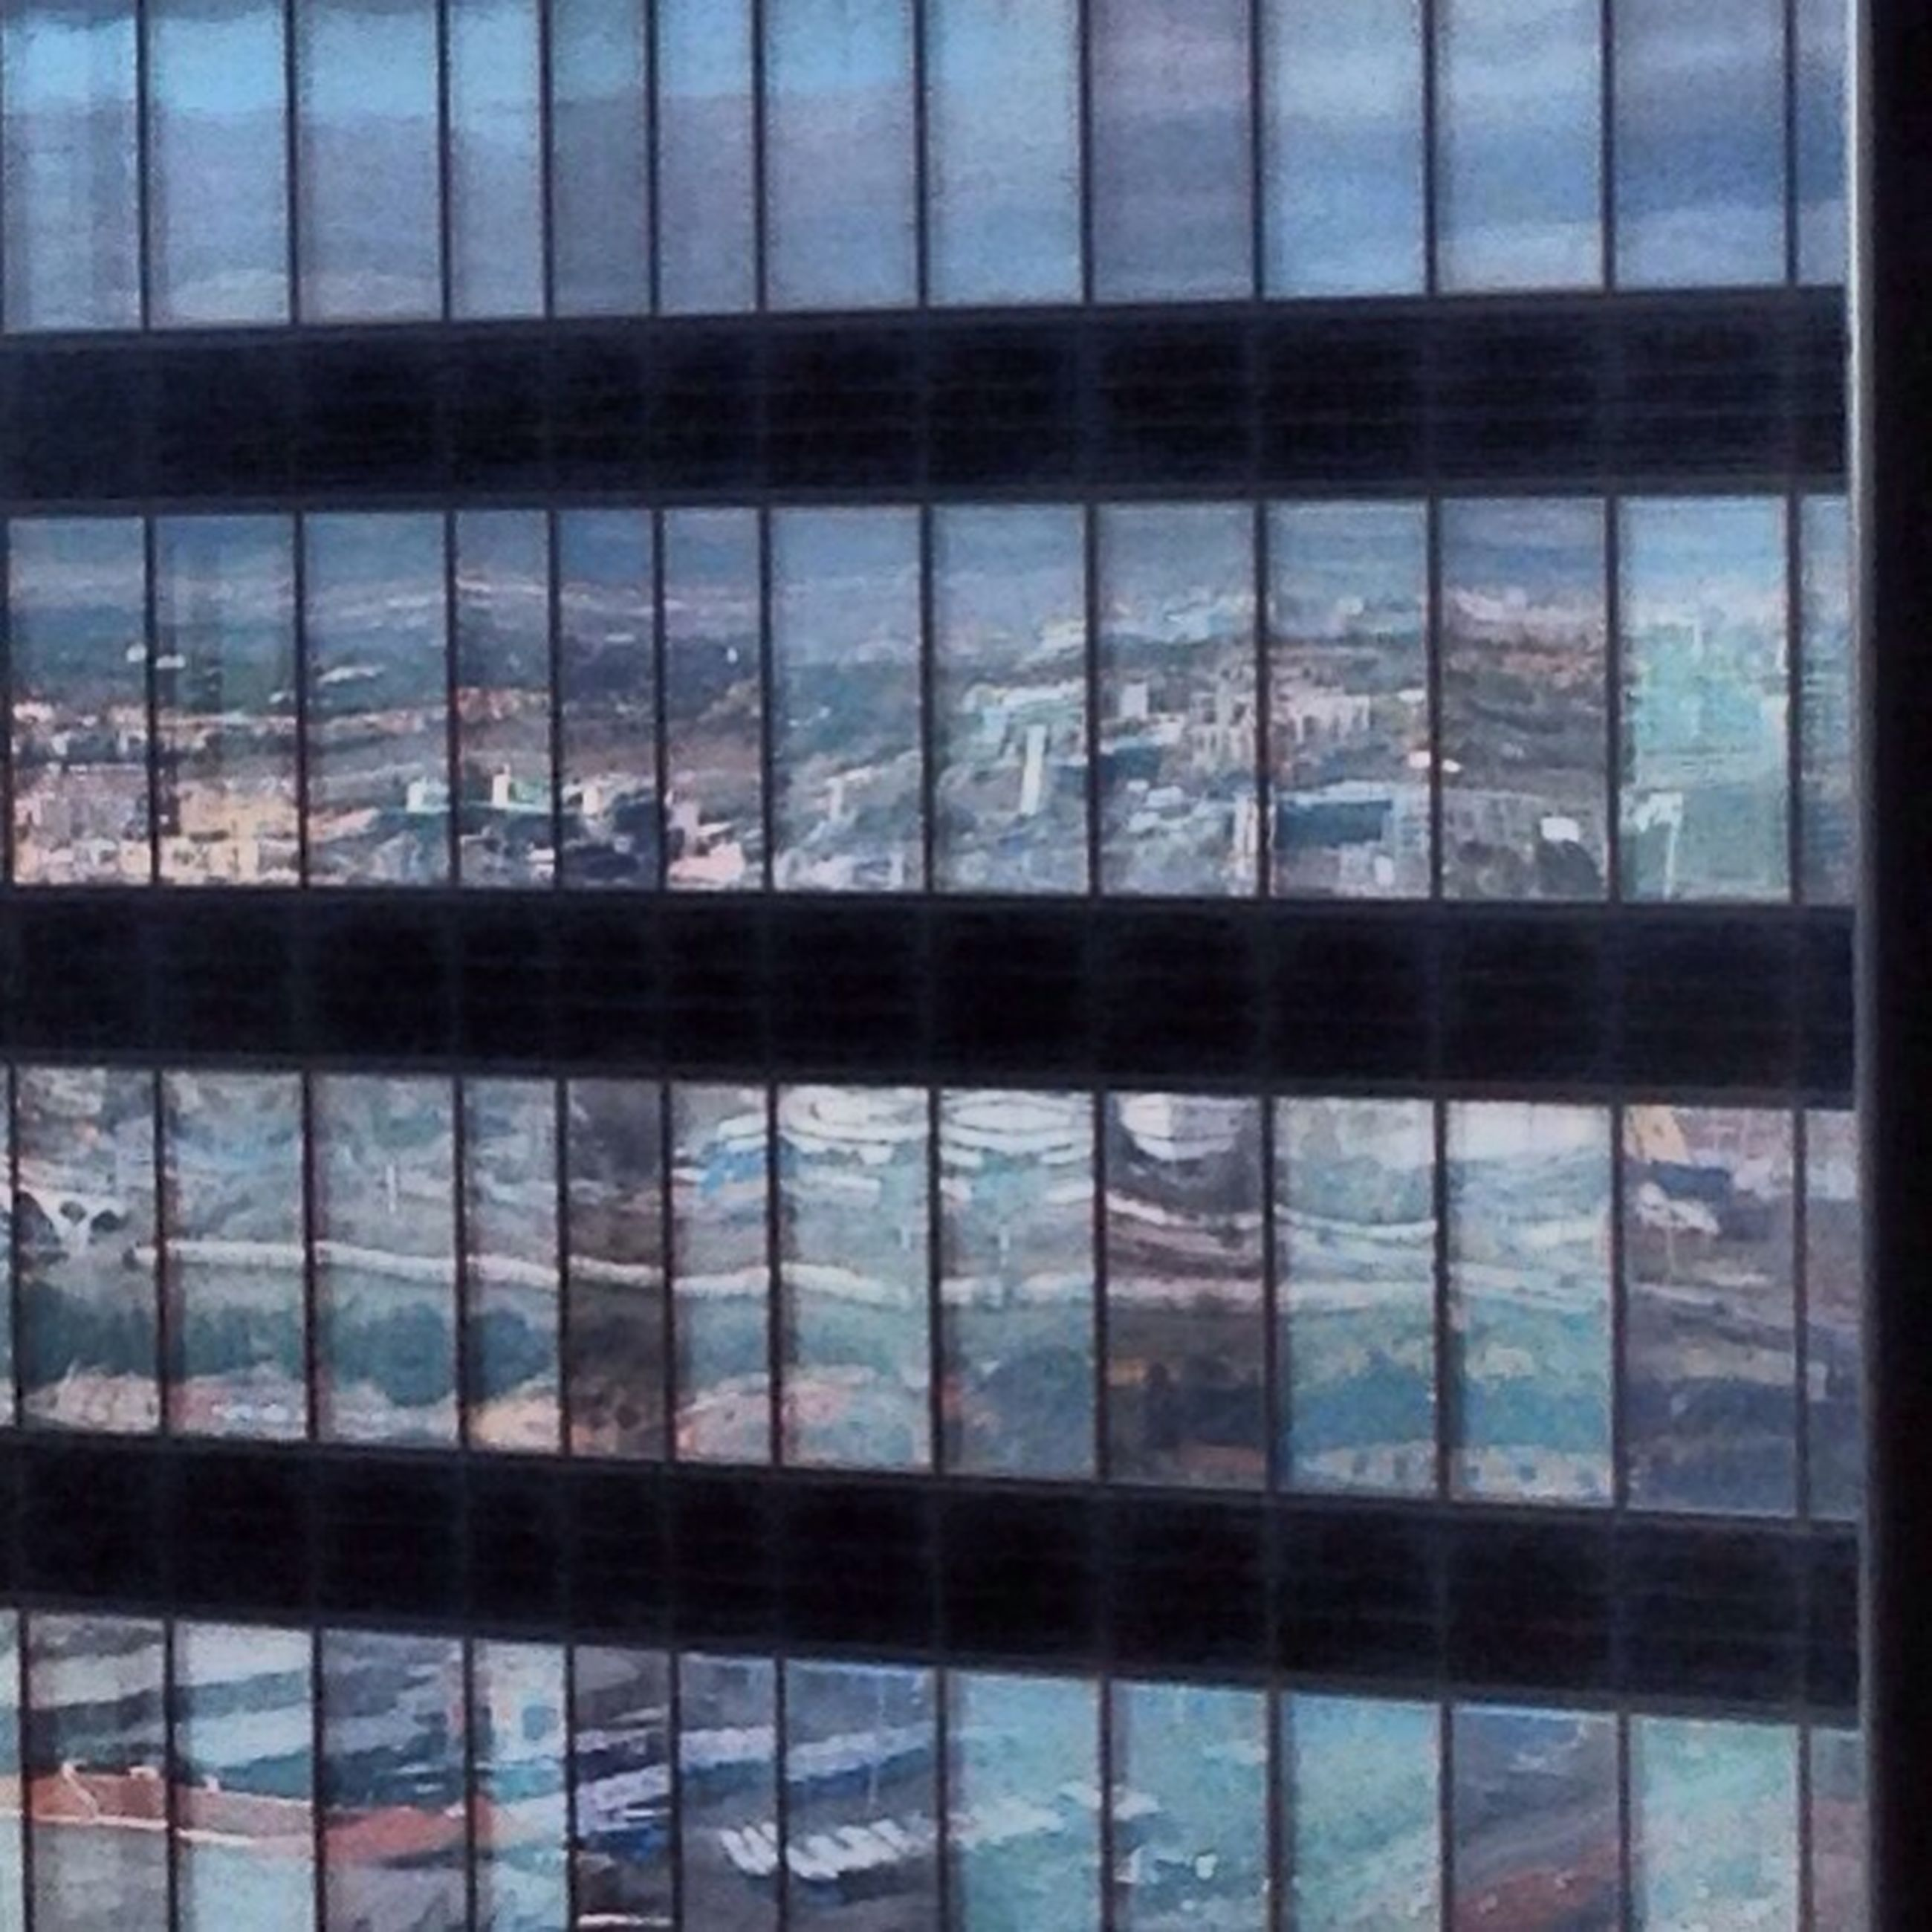 glass - material, architecture, built structure, window, reflection, building exterior, transparent, modern, pattern, indoors, glass, full frame, city, office building, building, day, backgrounds, sky, metal grate